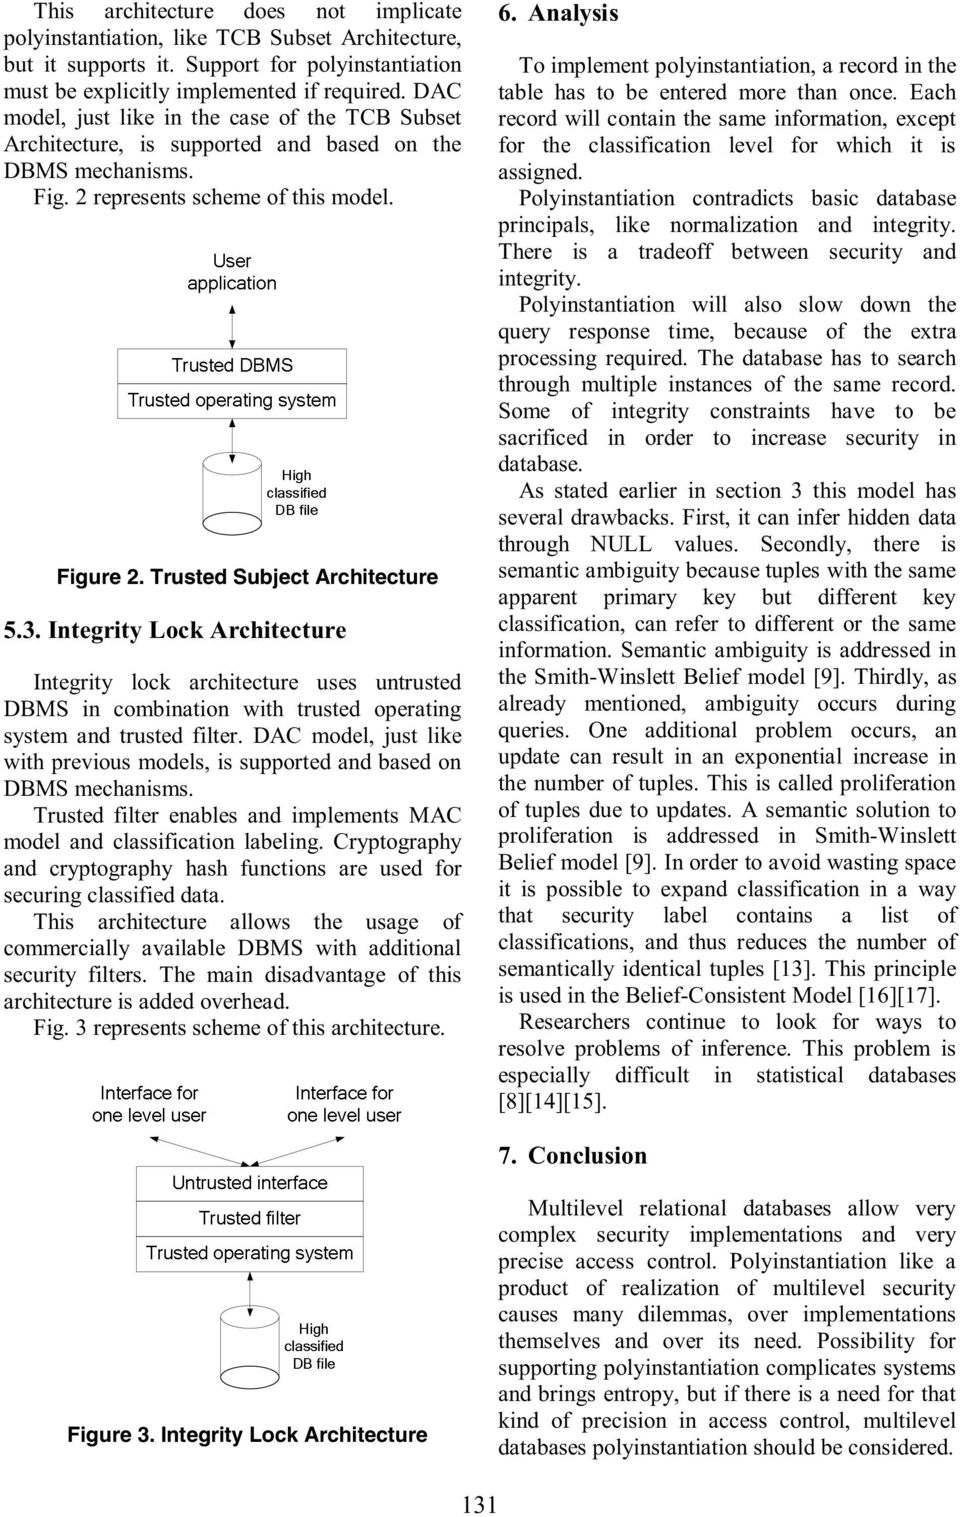 Polyinstantiation In Relational Databases With Multilevel Security Pdf Database And Integrity Dbms Lock Architecture Uses Untrusted Combination Trusted Operating System